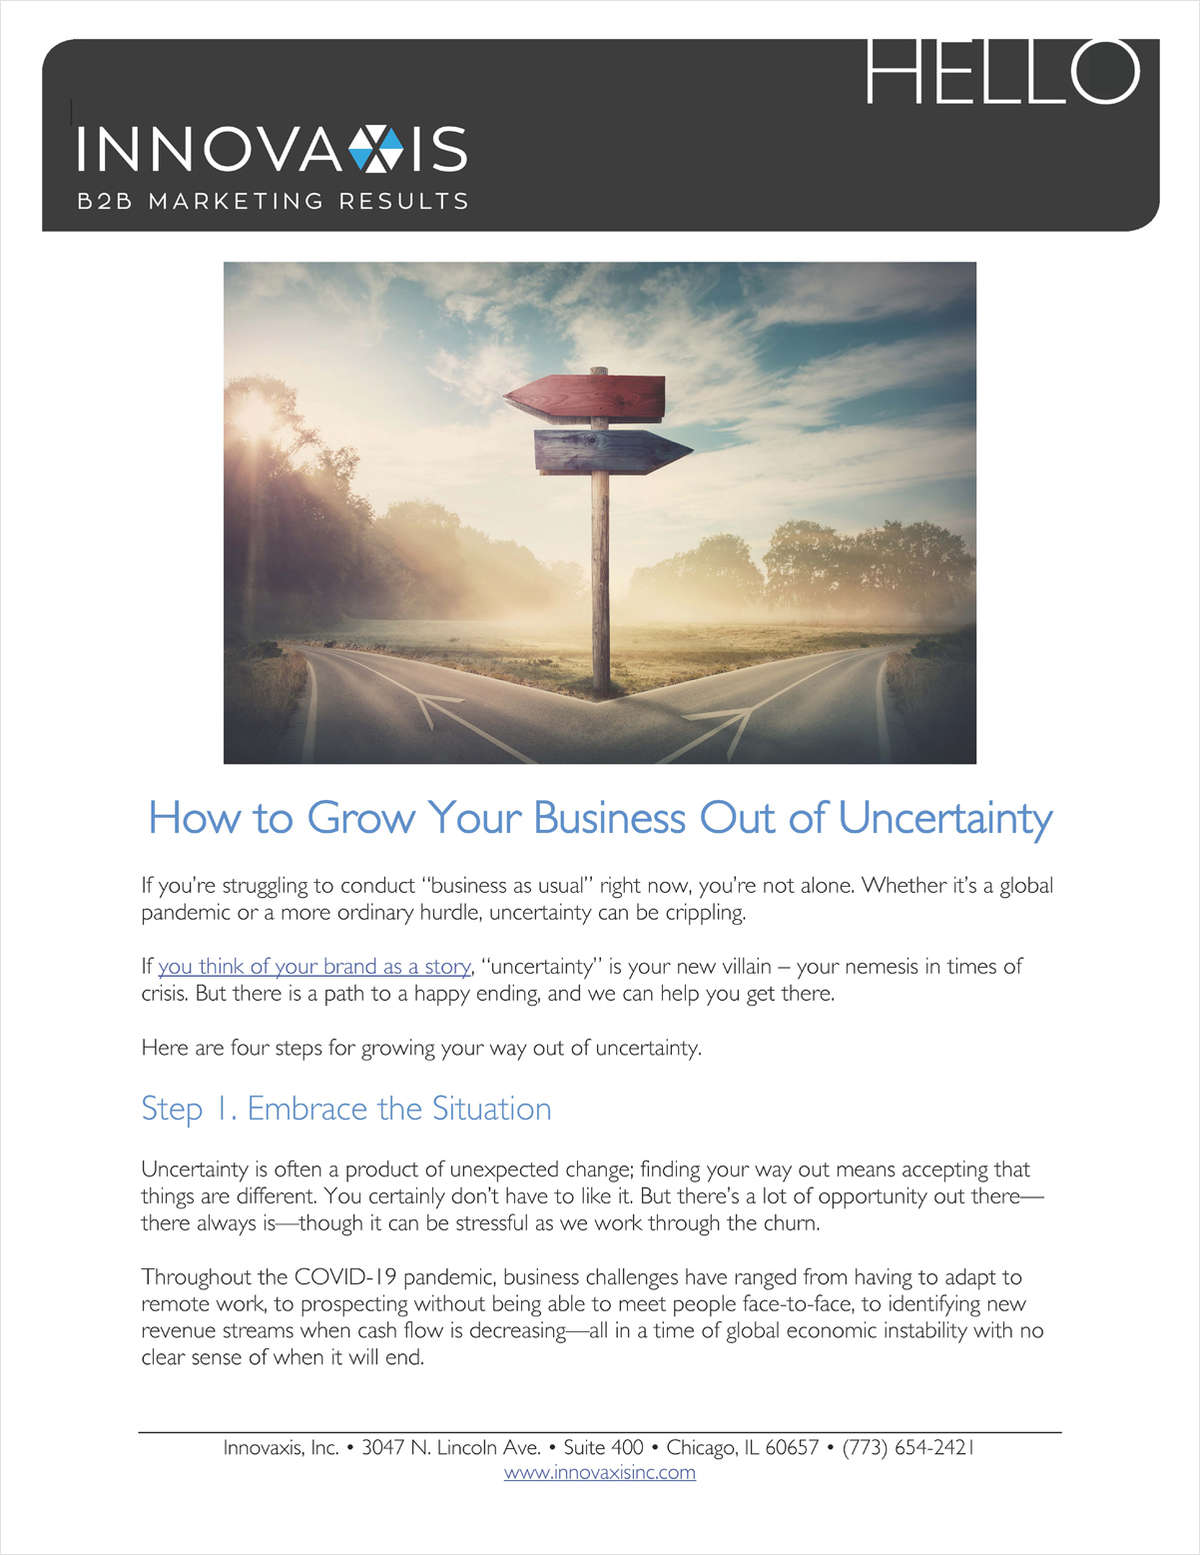 How to Grow Your Business Out of Uncertainty